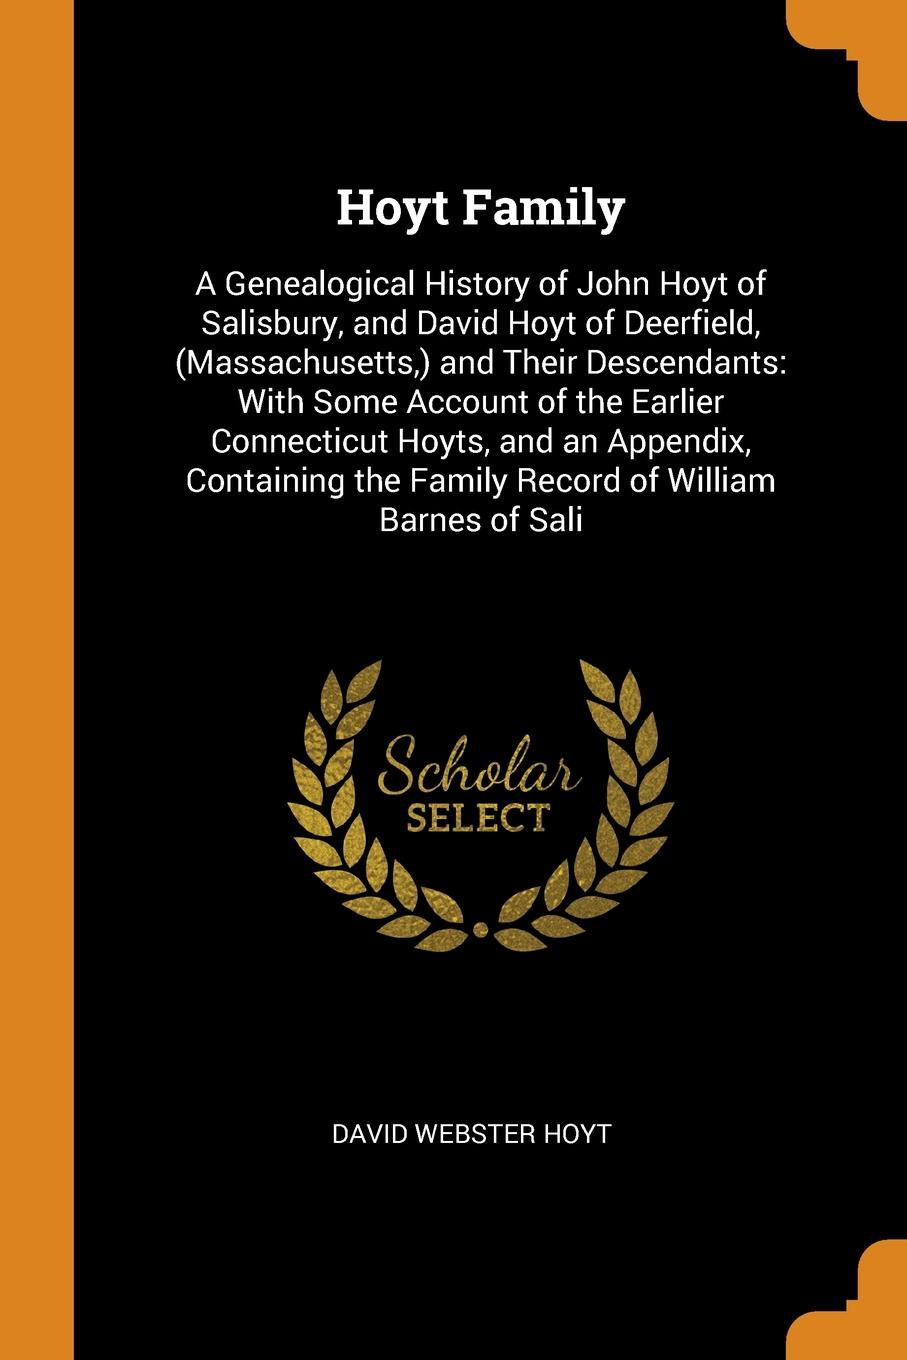 David Webster Hoyt Hoyt Family. A Genealogical History of John Hoyt of Salisbury, and David Hoyt of Deerfield, (Massachusetts,) and Their Descendants: With Some Account of the Earlier Connecticut Hoyts, and an Appendix, Containing the Family Record of William Barnes... redington carter john redington of topsfield massachusetts and some of his descendants with notes on the wales family